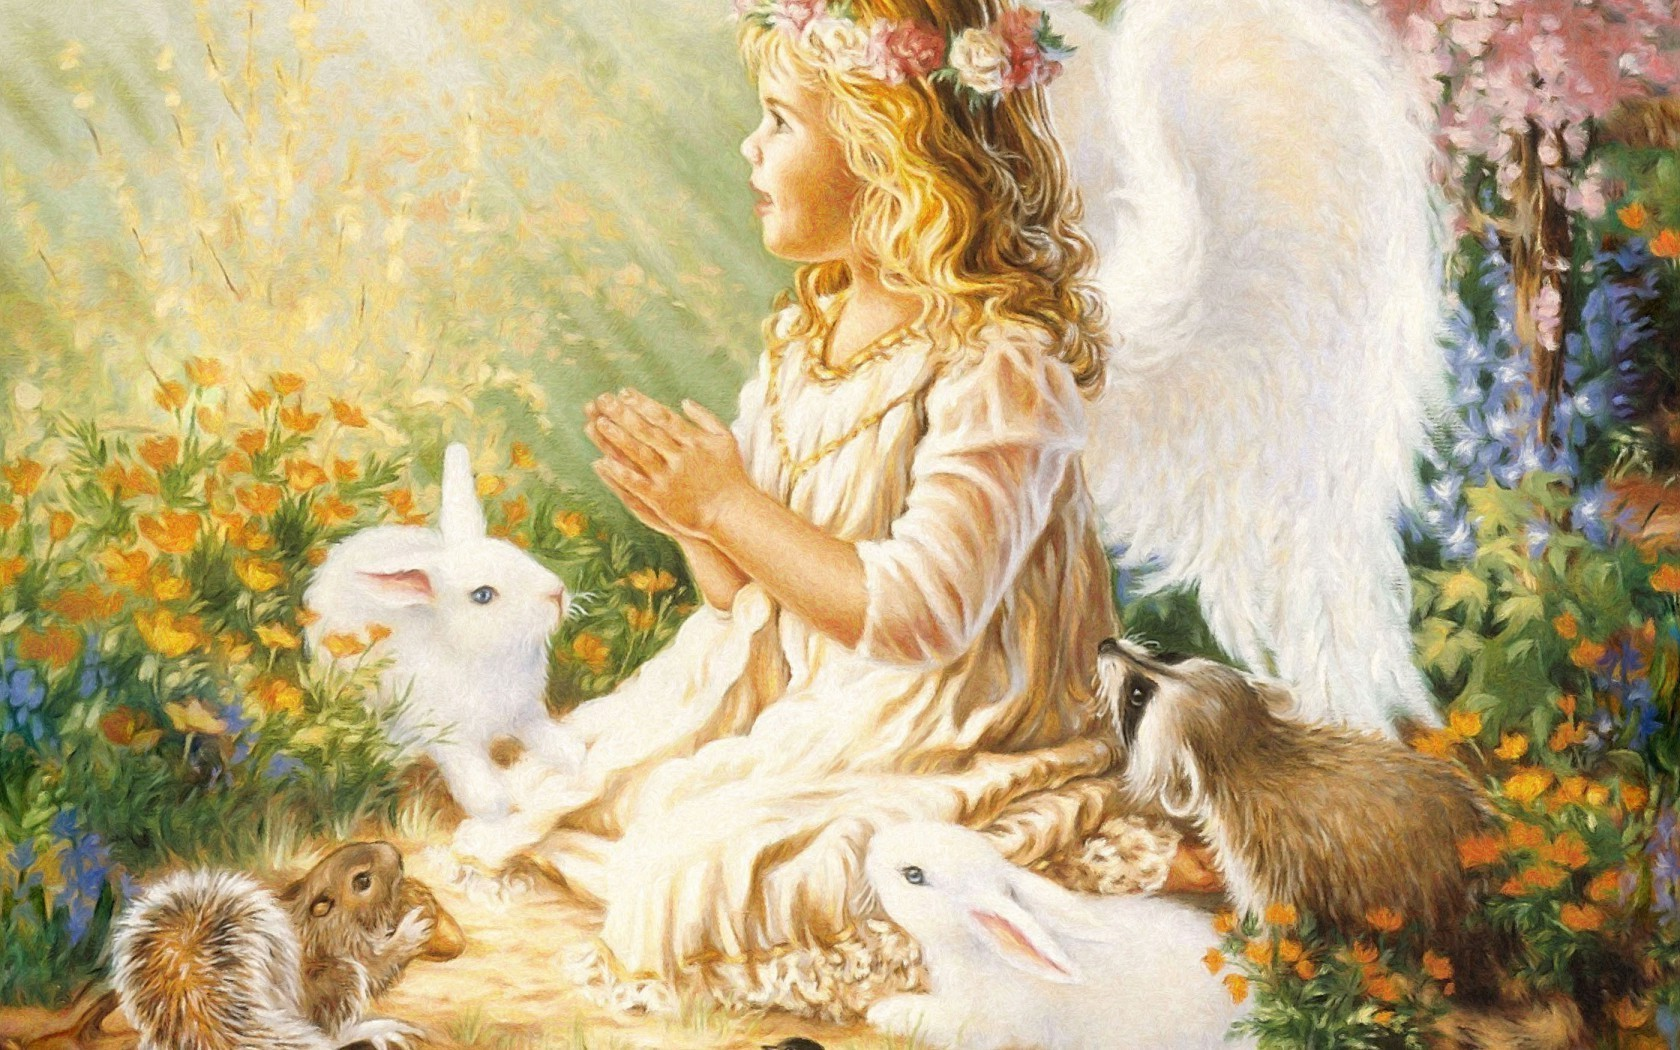 Angel Rabbits Flowers Free Wallpapers